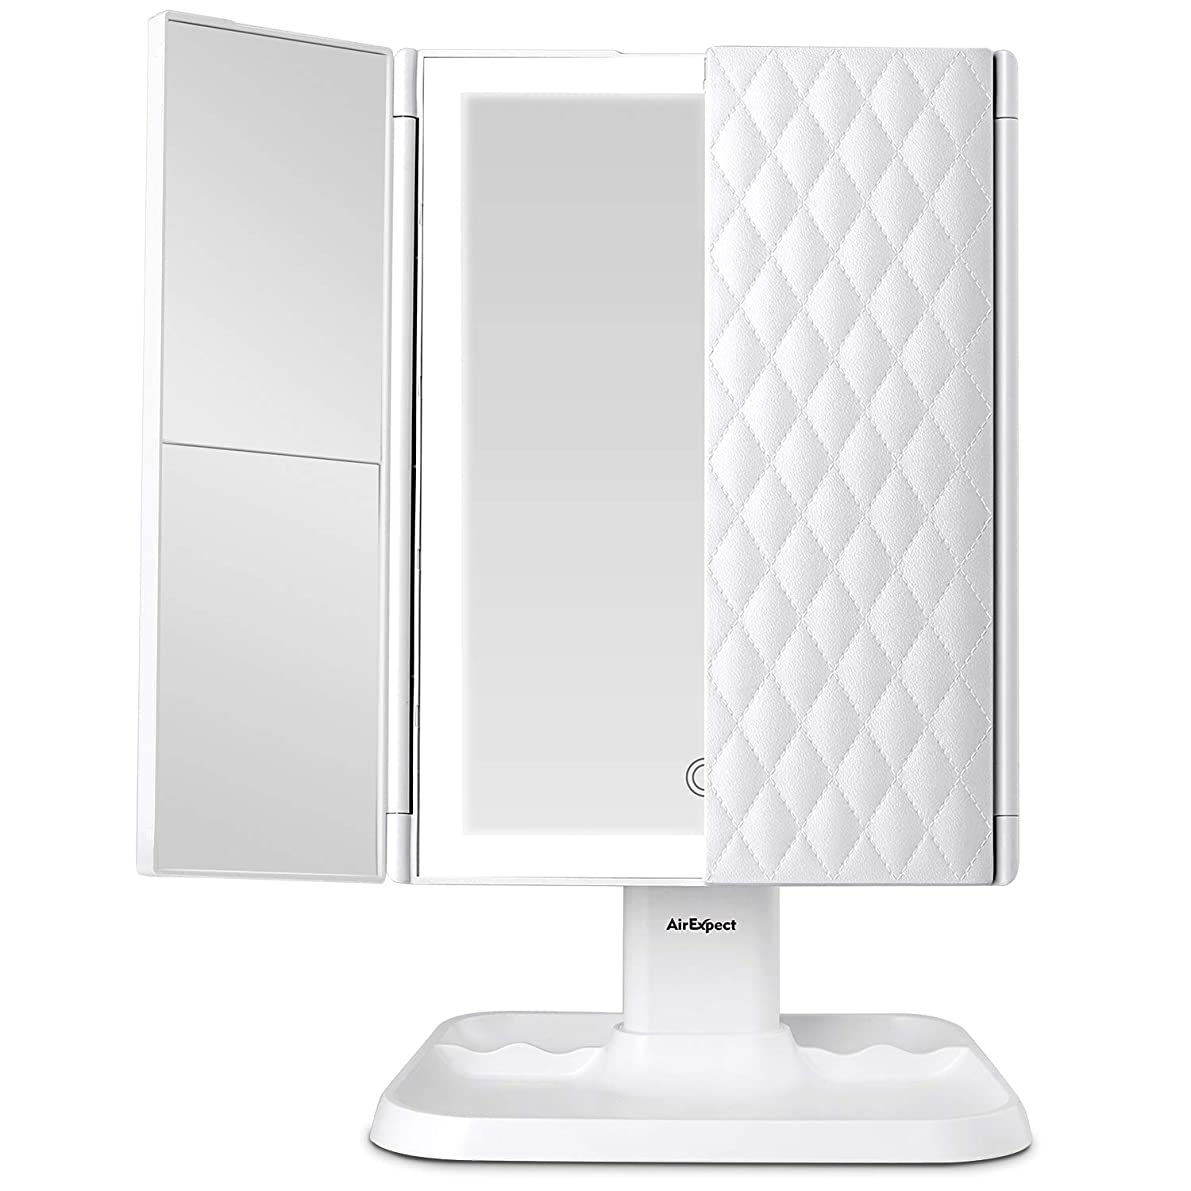 Makeup Mirror Vanity Mirror with Lights - 3 Color Lighting Modes 72 LED Trifold Mirror, Touch Control Design, 1x/2x/3x Magnification, Portable High Definition Cosmetic Lighted Up Mirror